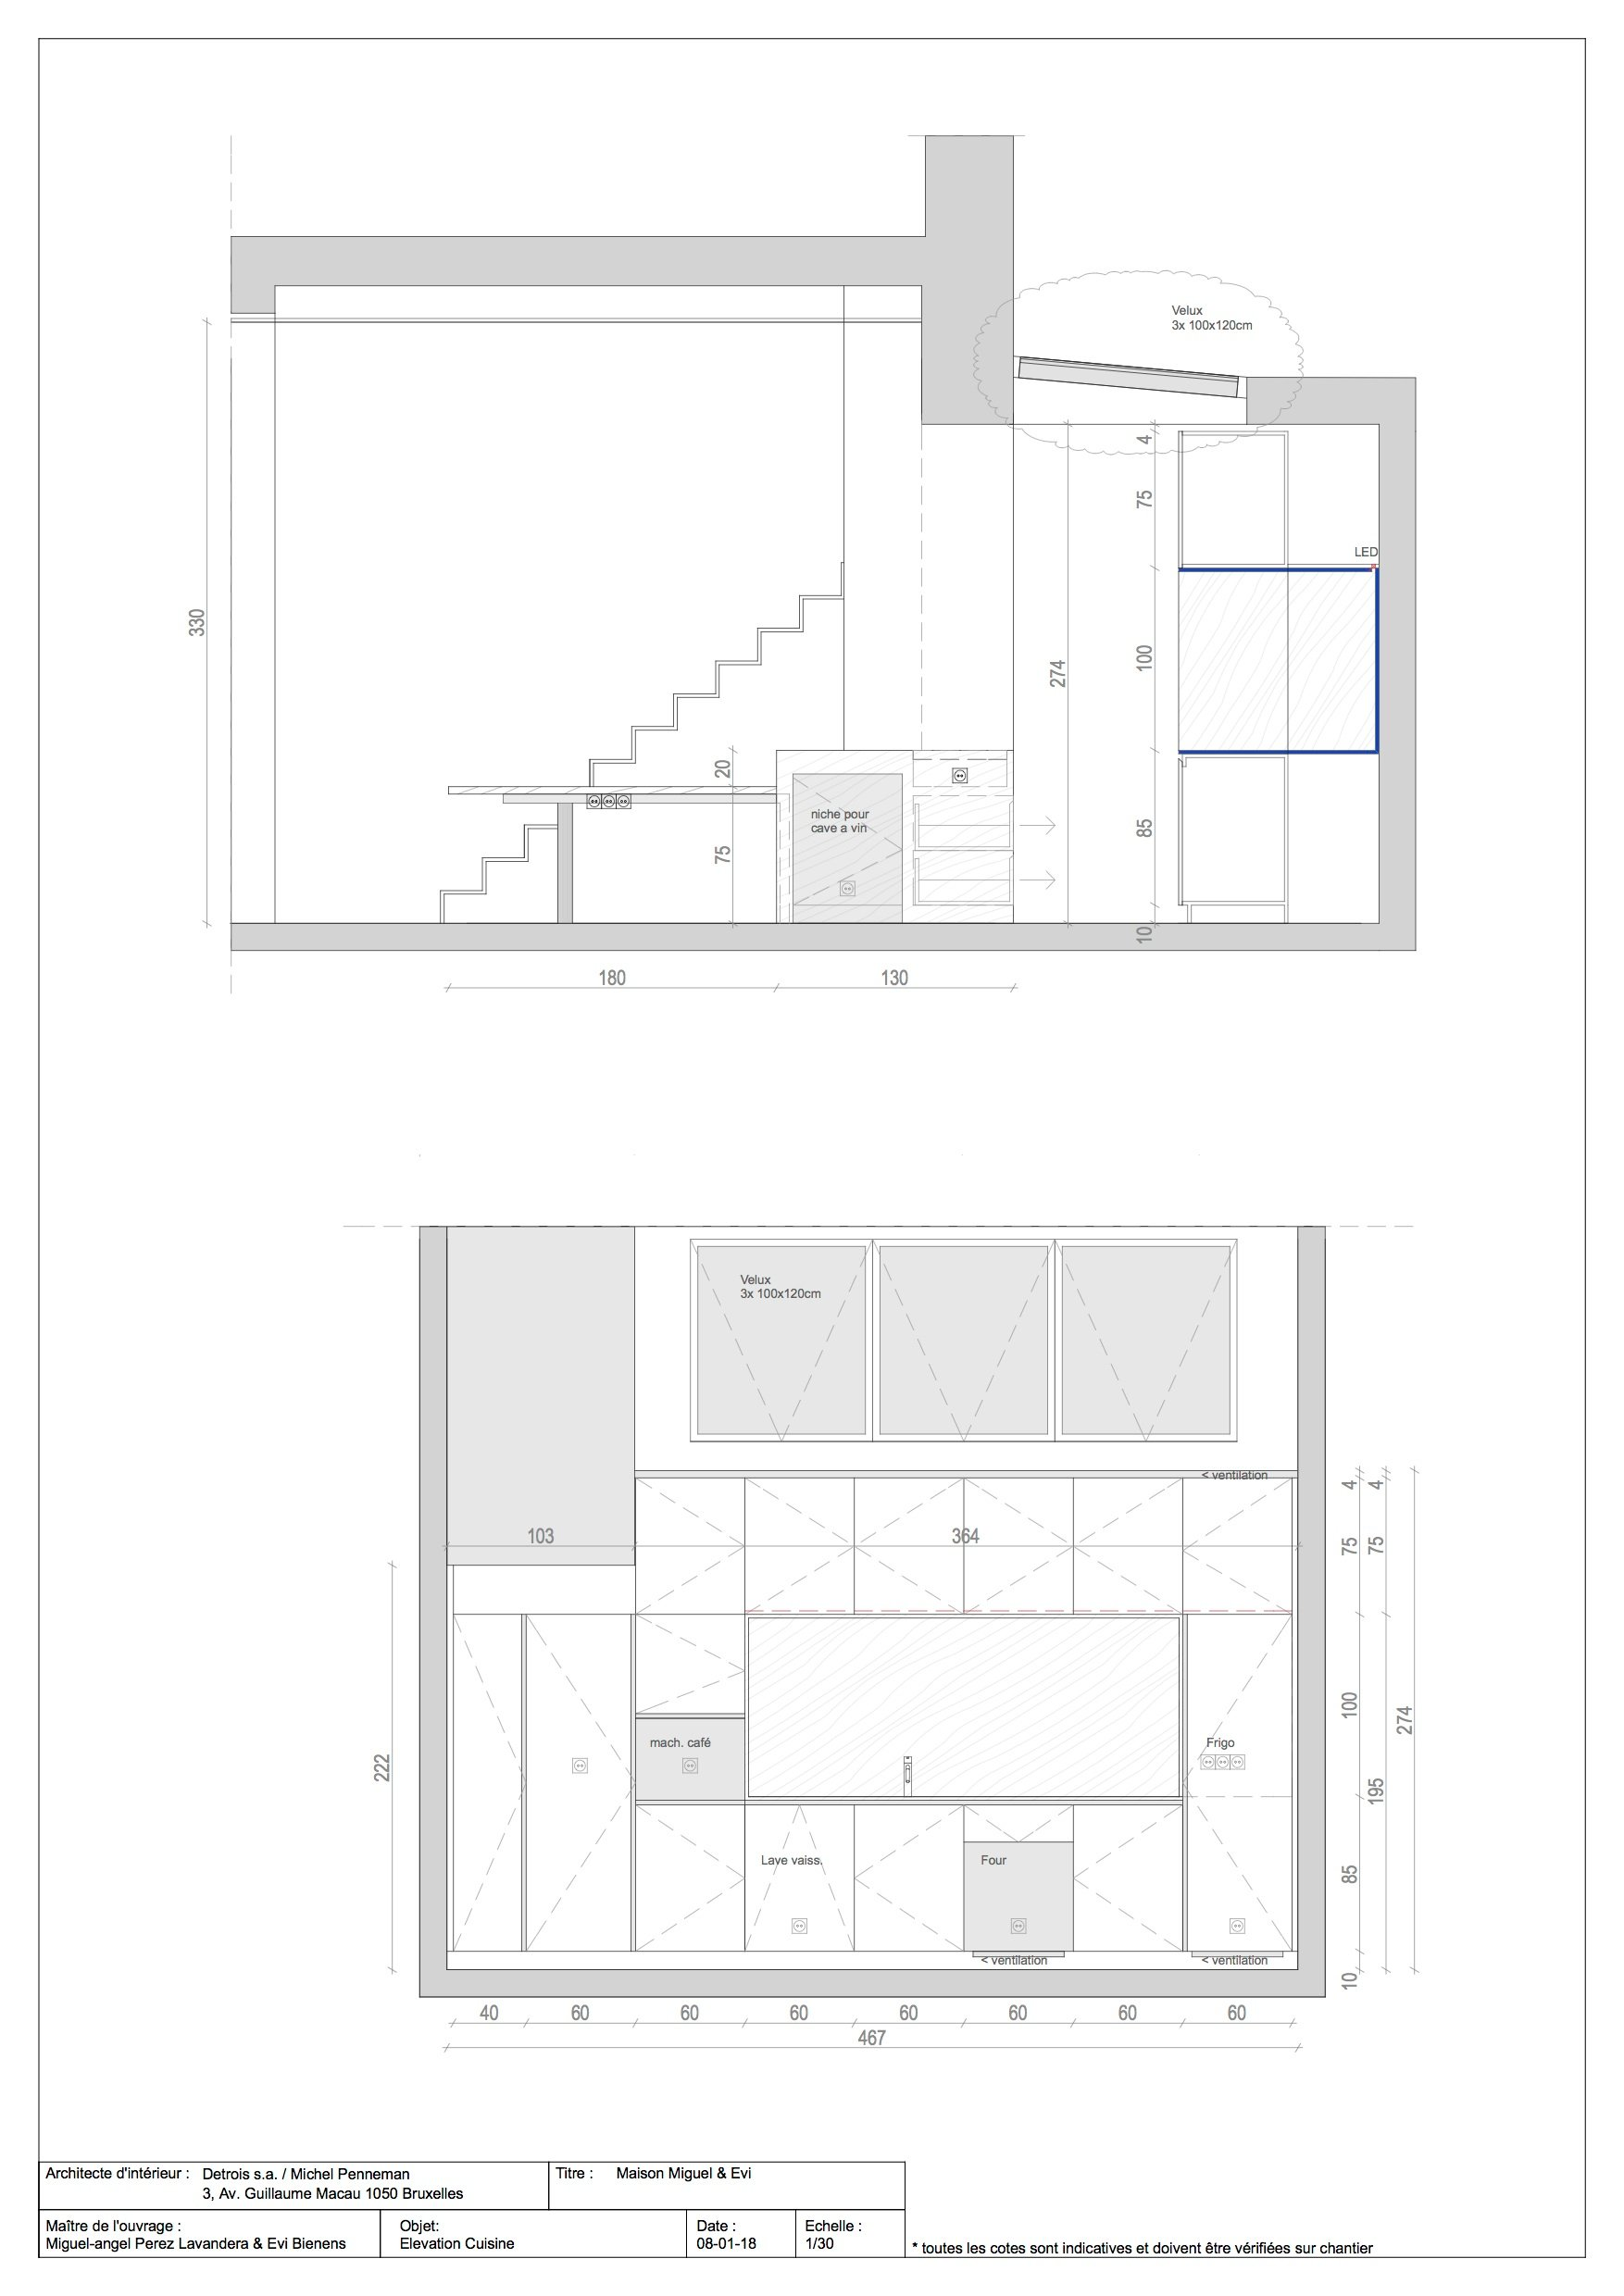 Floor Plan 3 Michel Penneman}